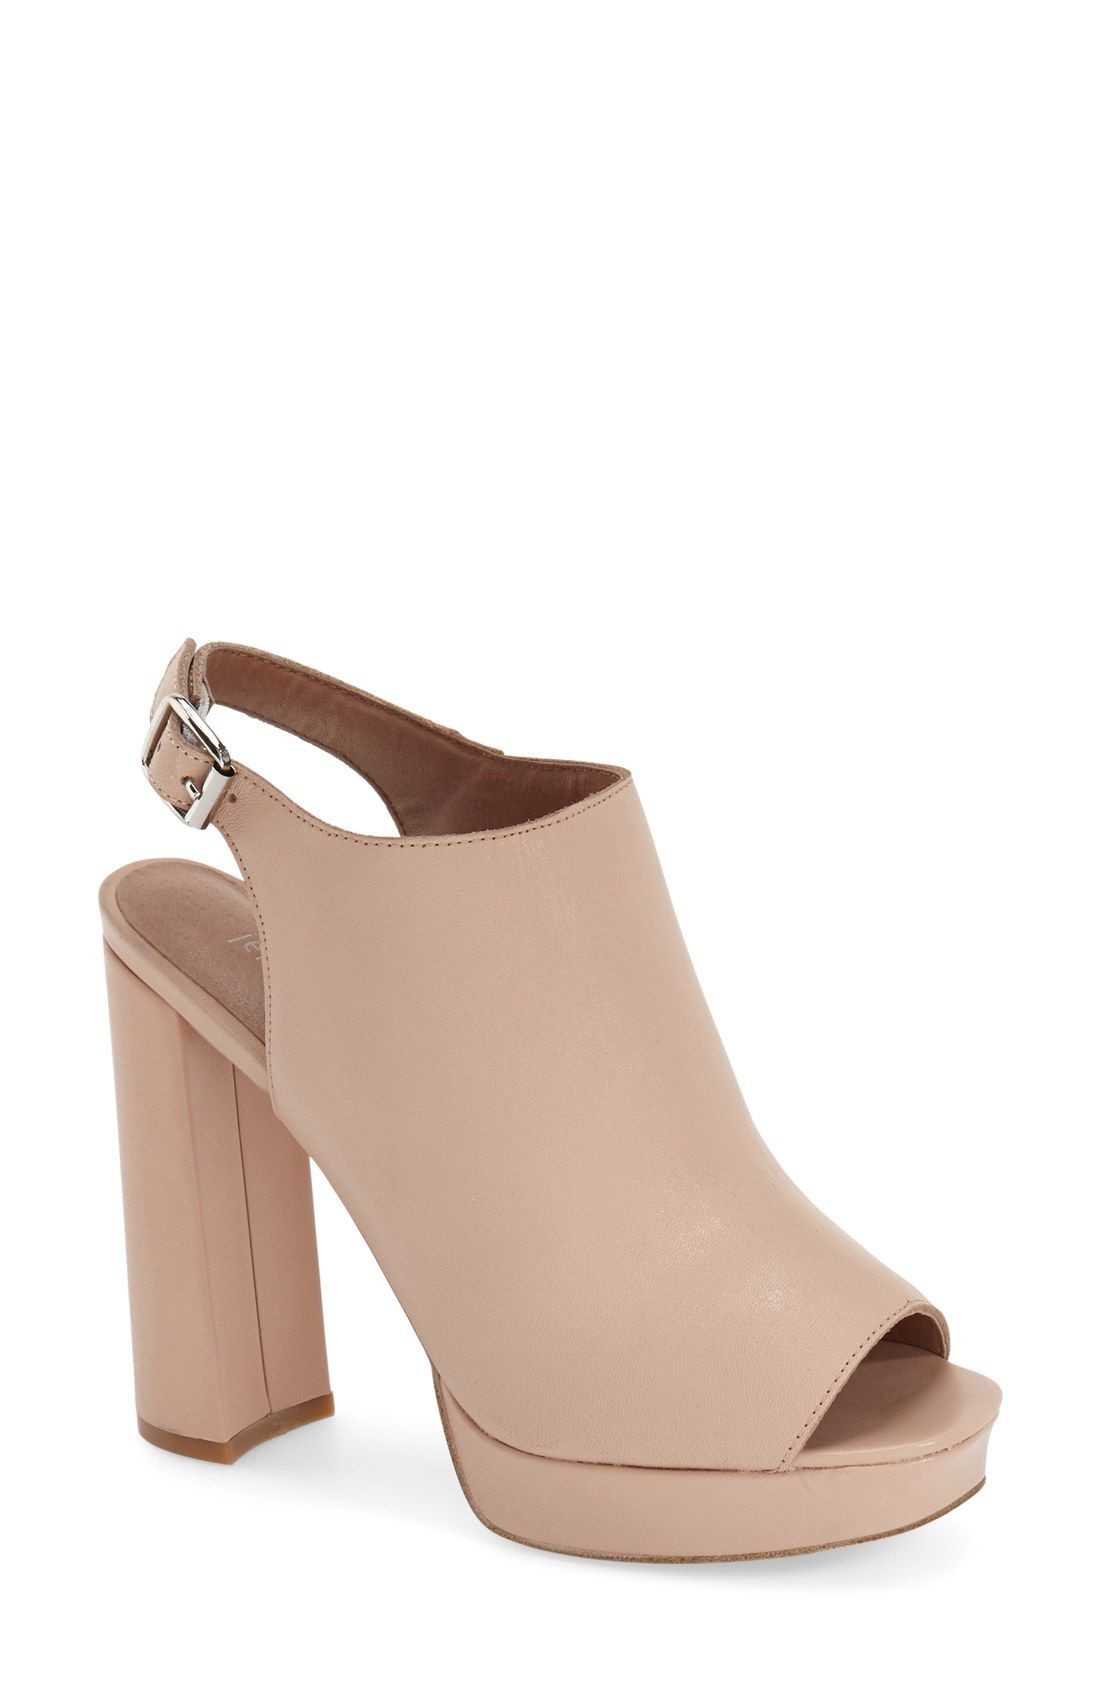 6bfa67aa175d ... Shoes Cute Thigh High Heel Boots for Womens and Mens. Jeffrey Campbell   Payola  Platform Sandal (Women)